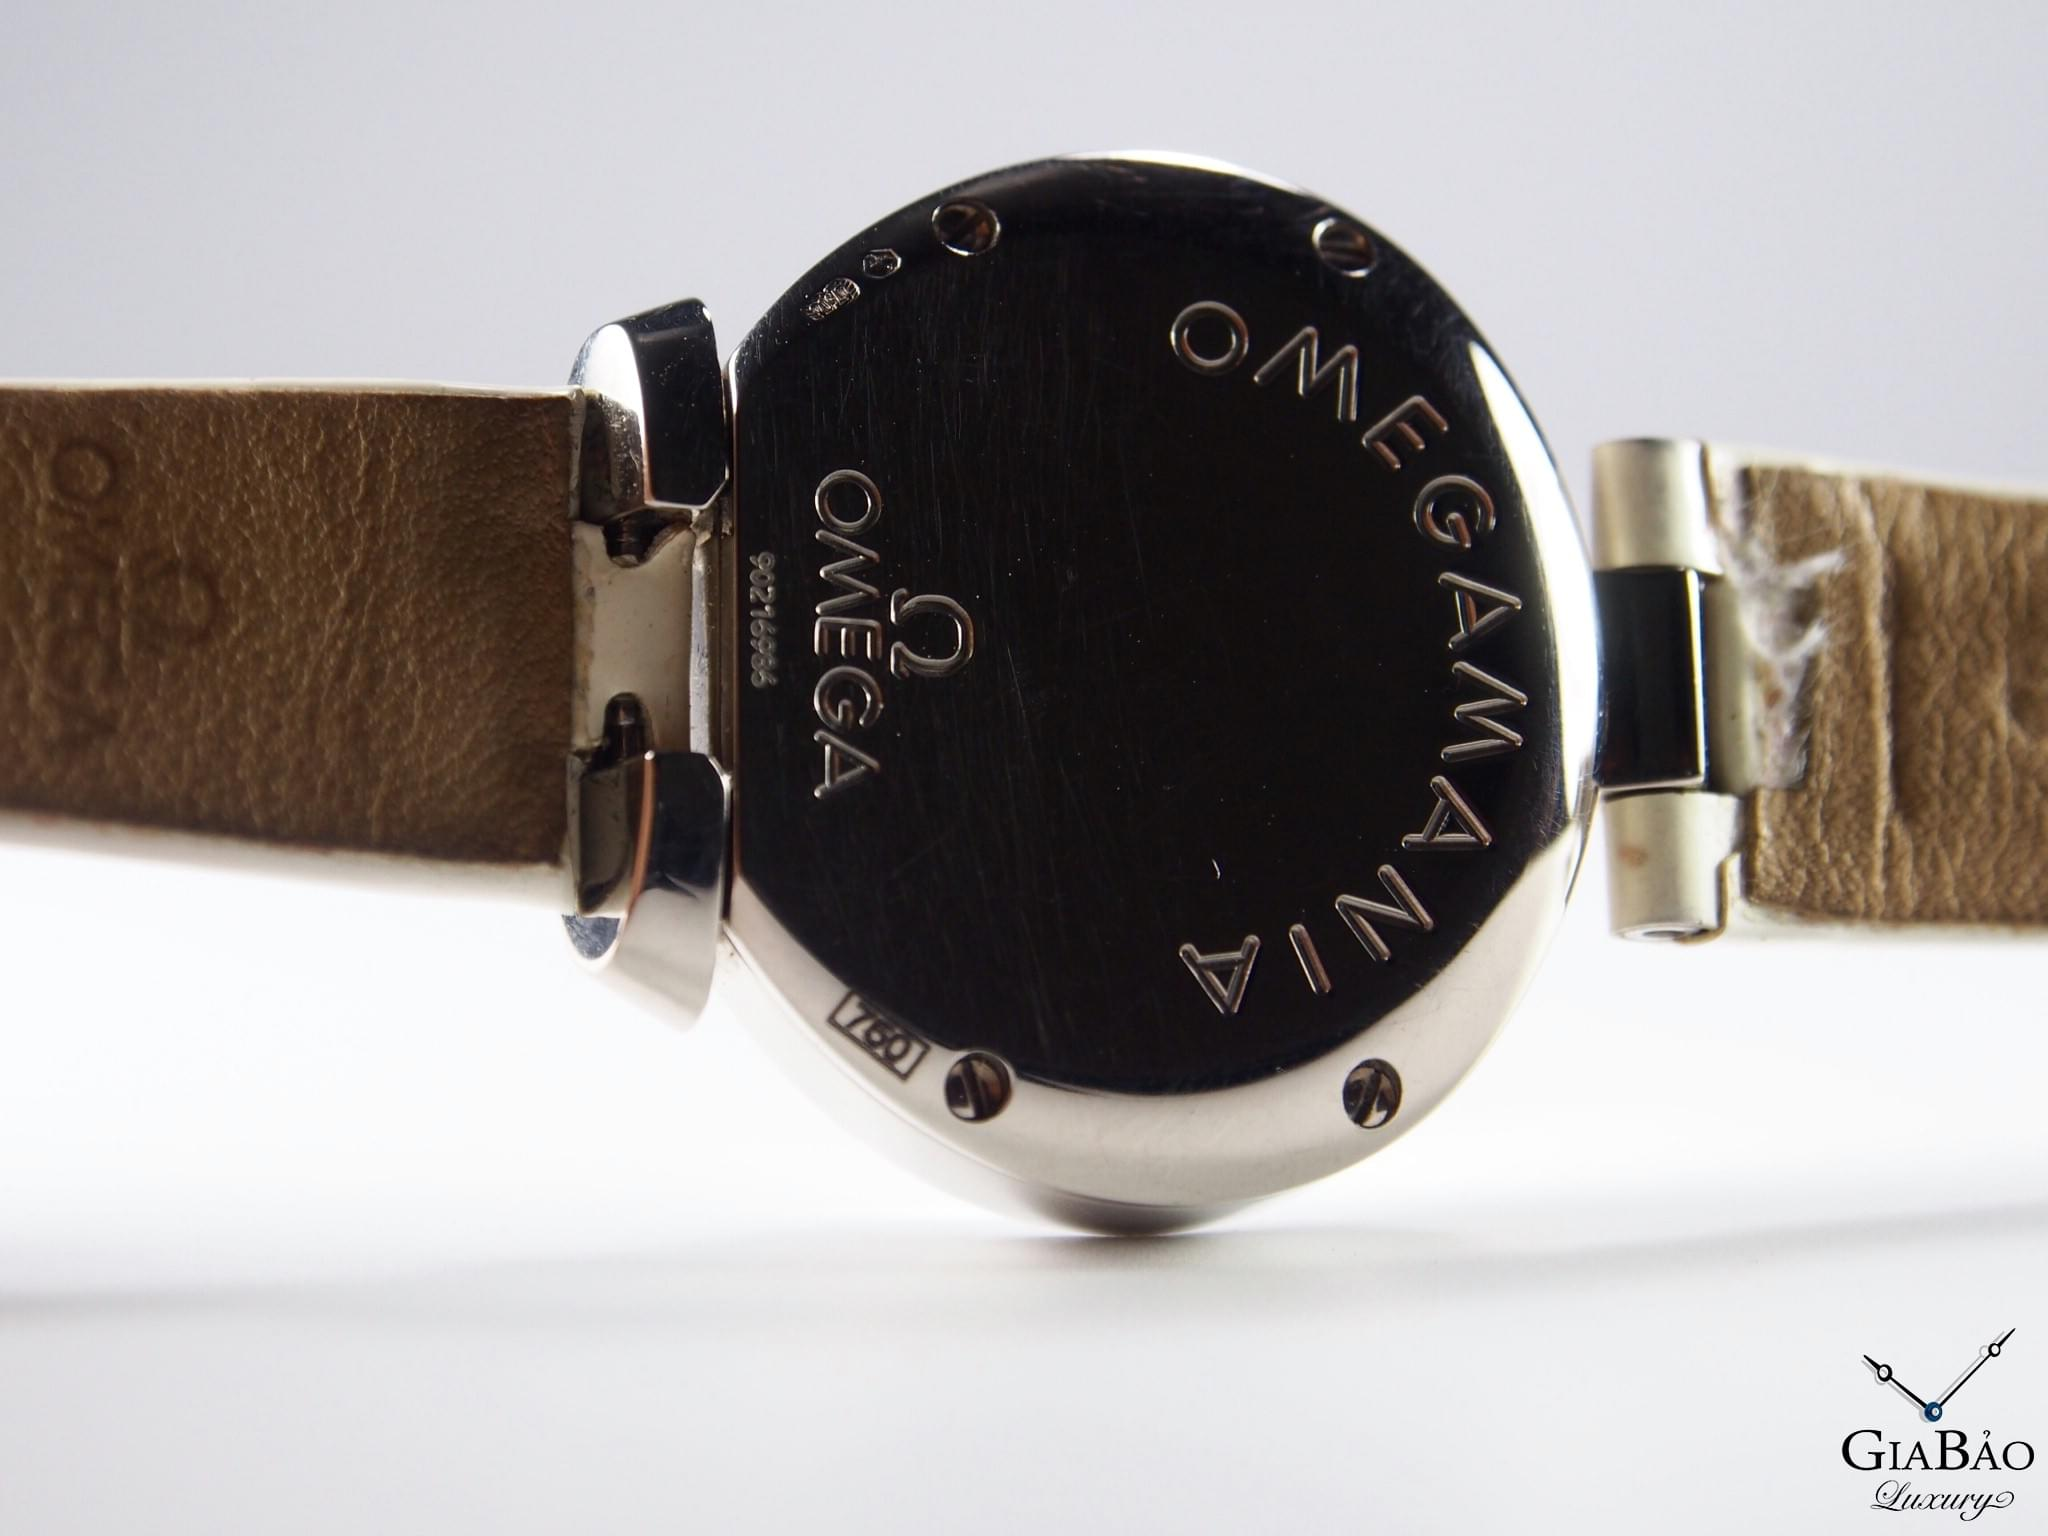 Đồng Hồ Omega Specialities Omegamania 5886.70.56